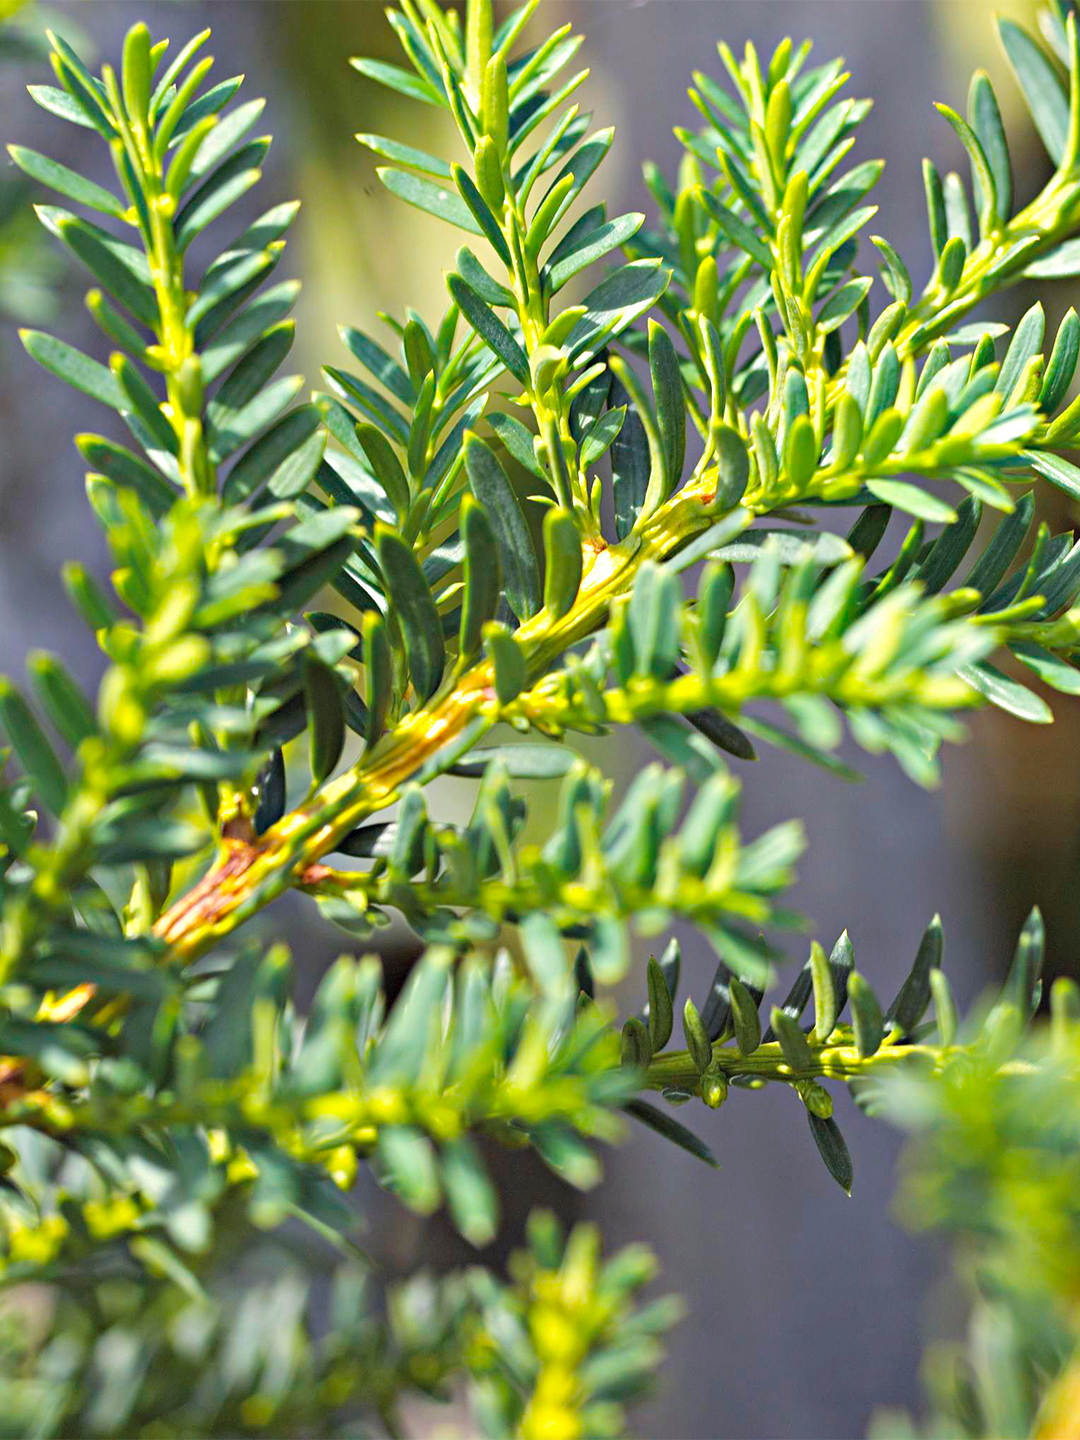 Japanese hybrid yew against gray-blue background